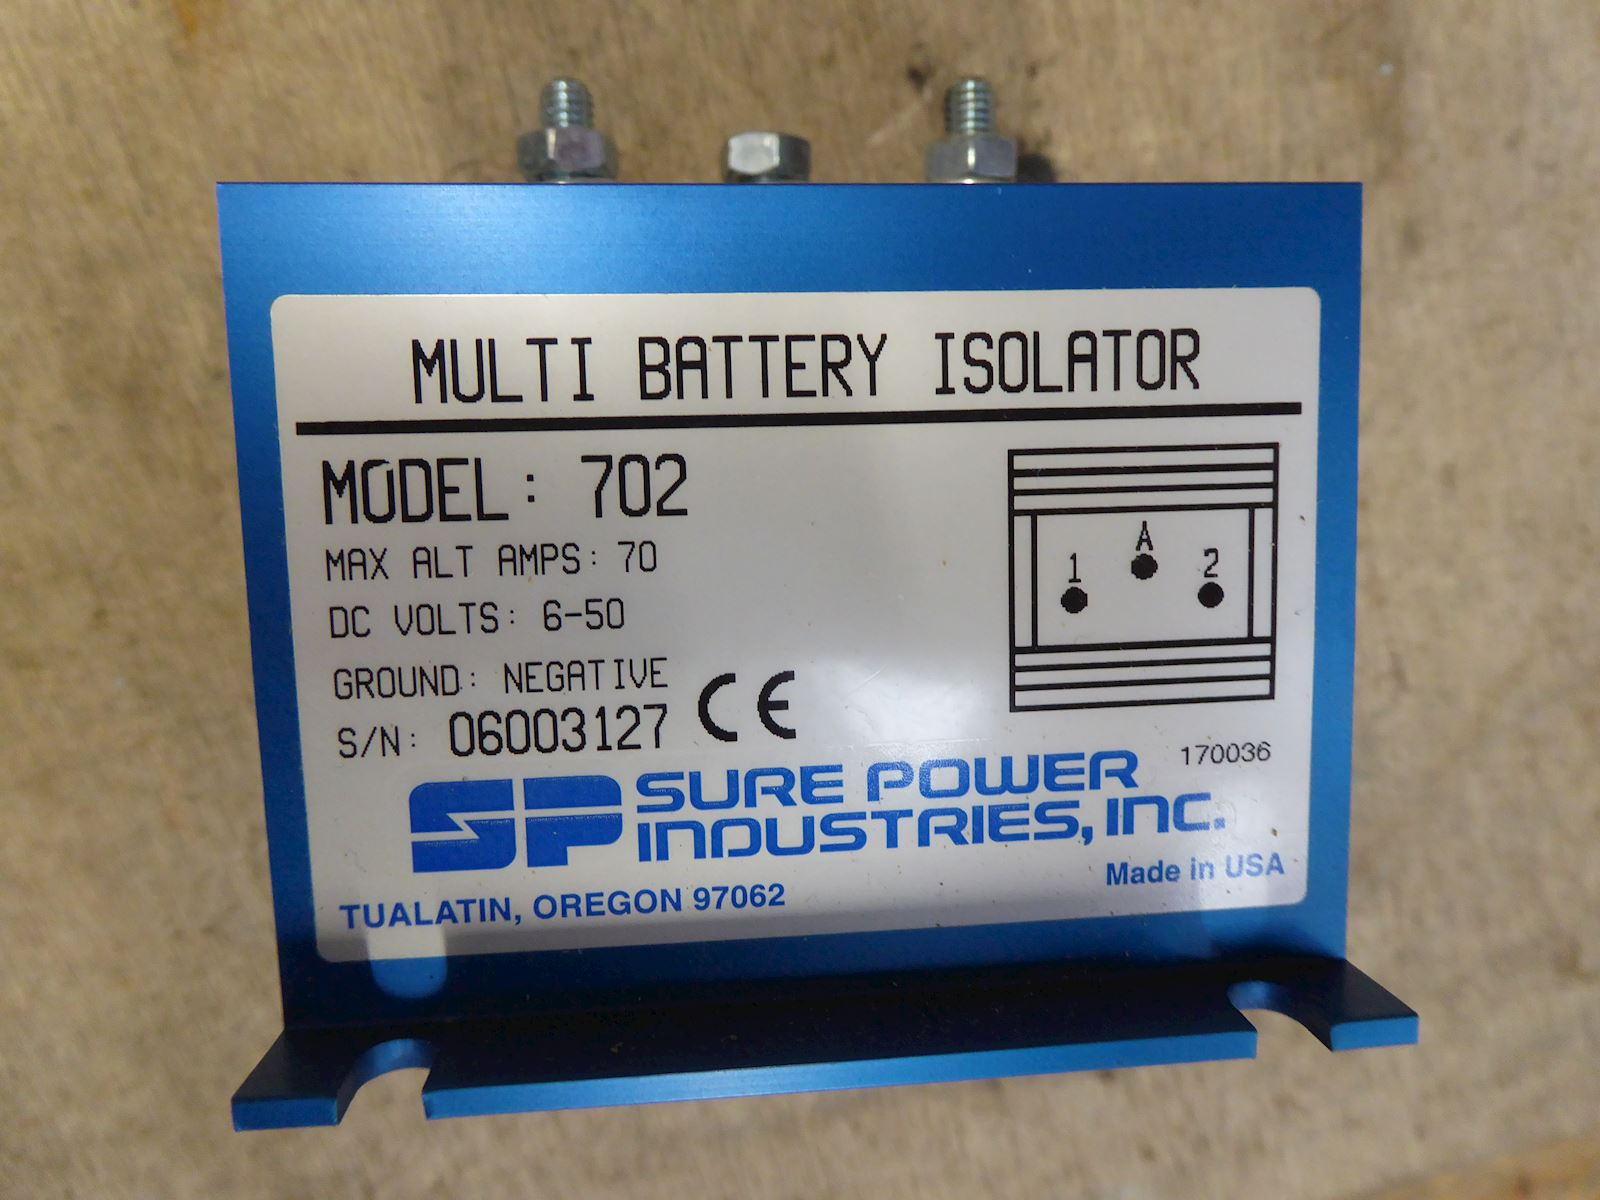 SP Industries Multi Battery Isolator 702